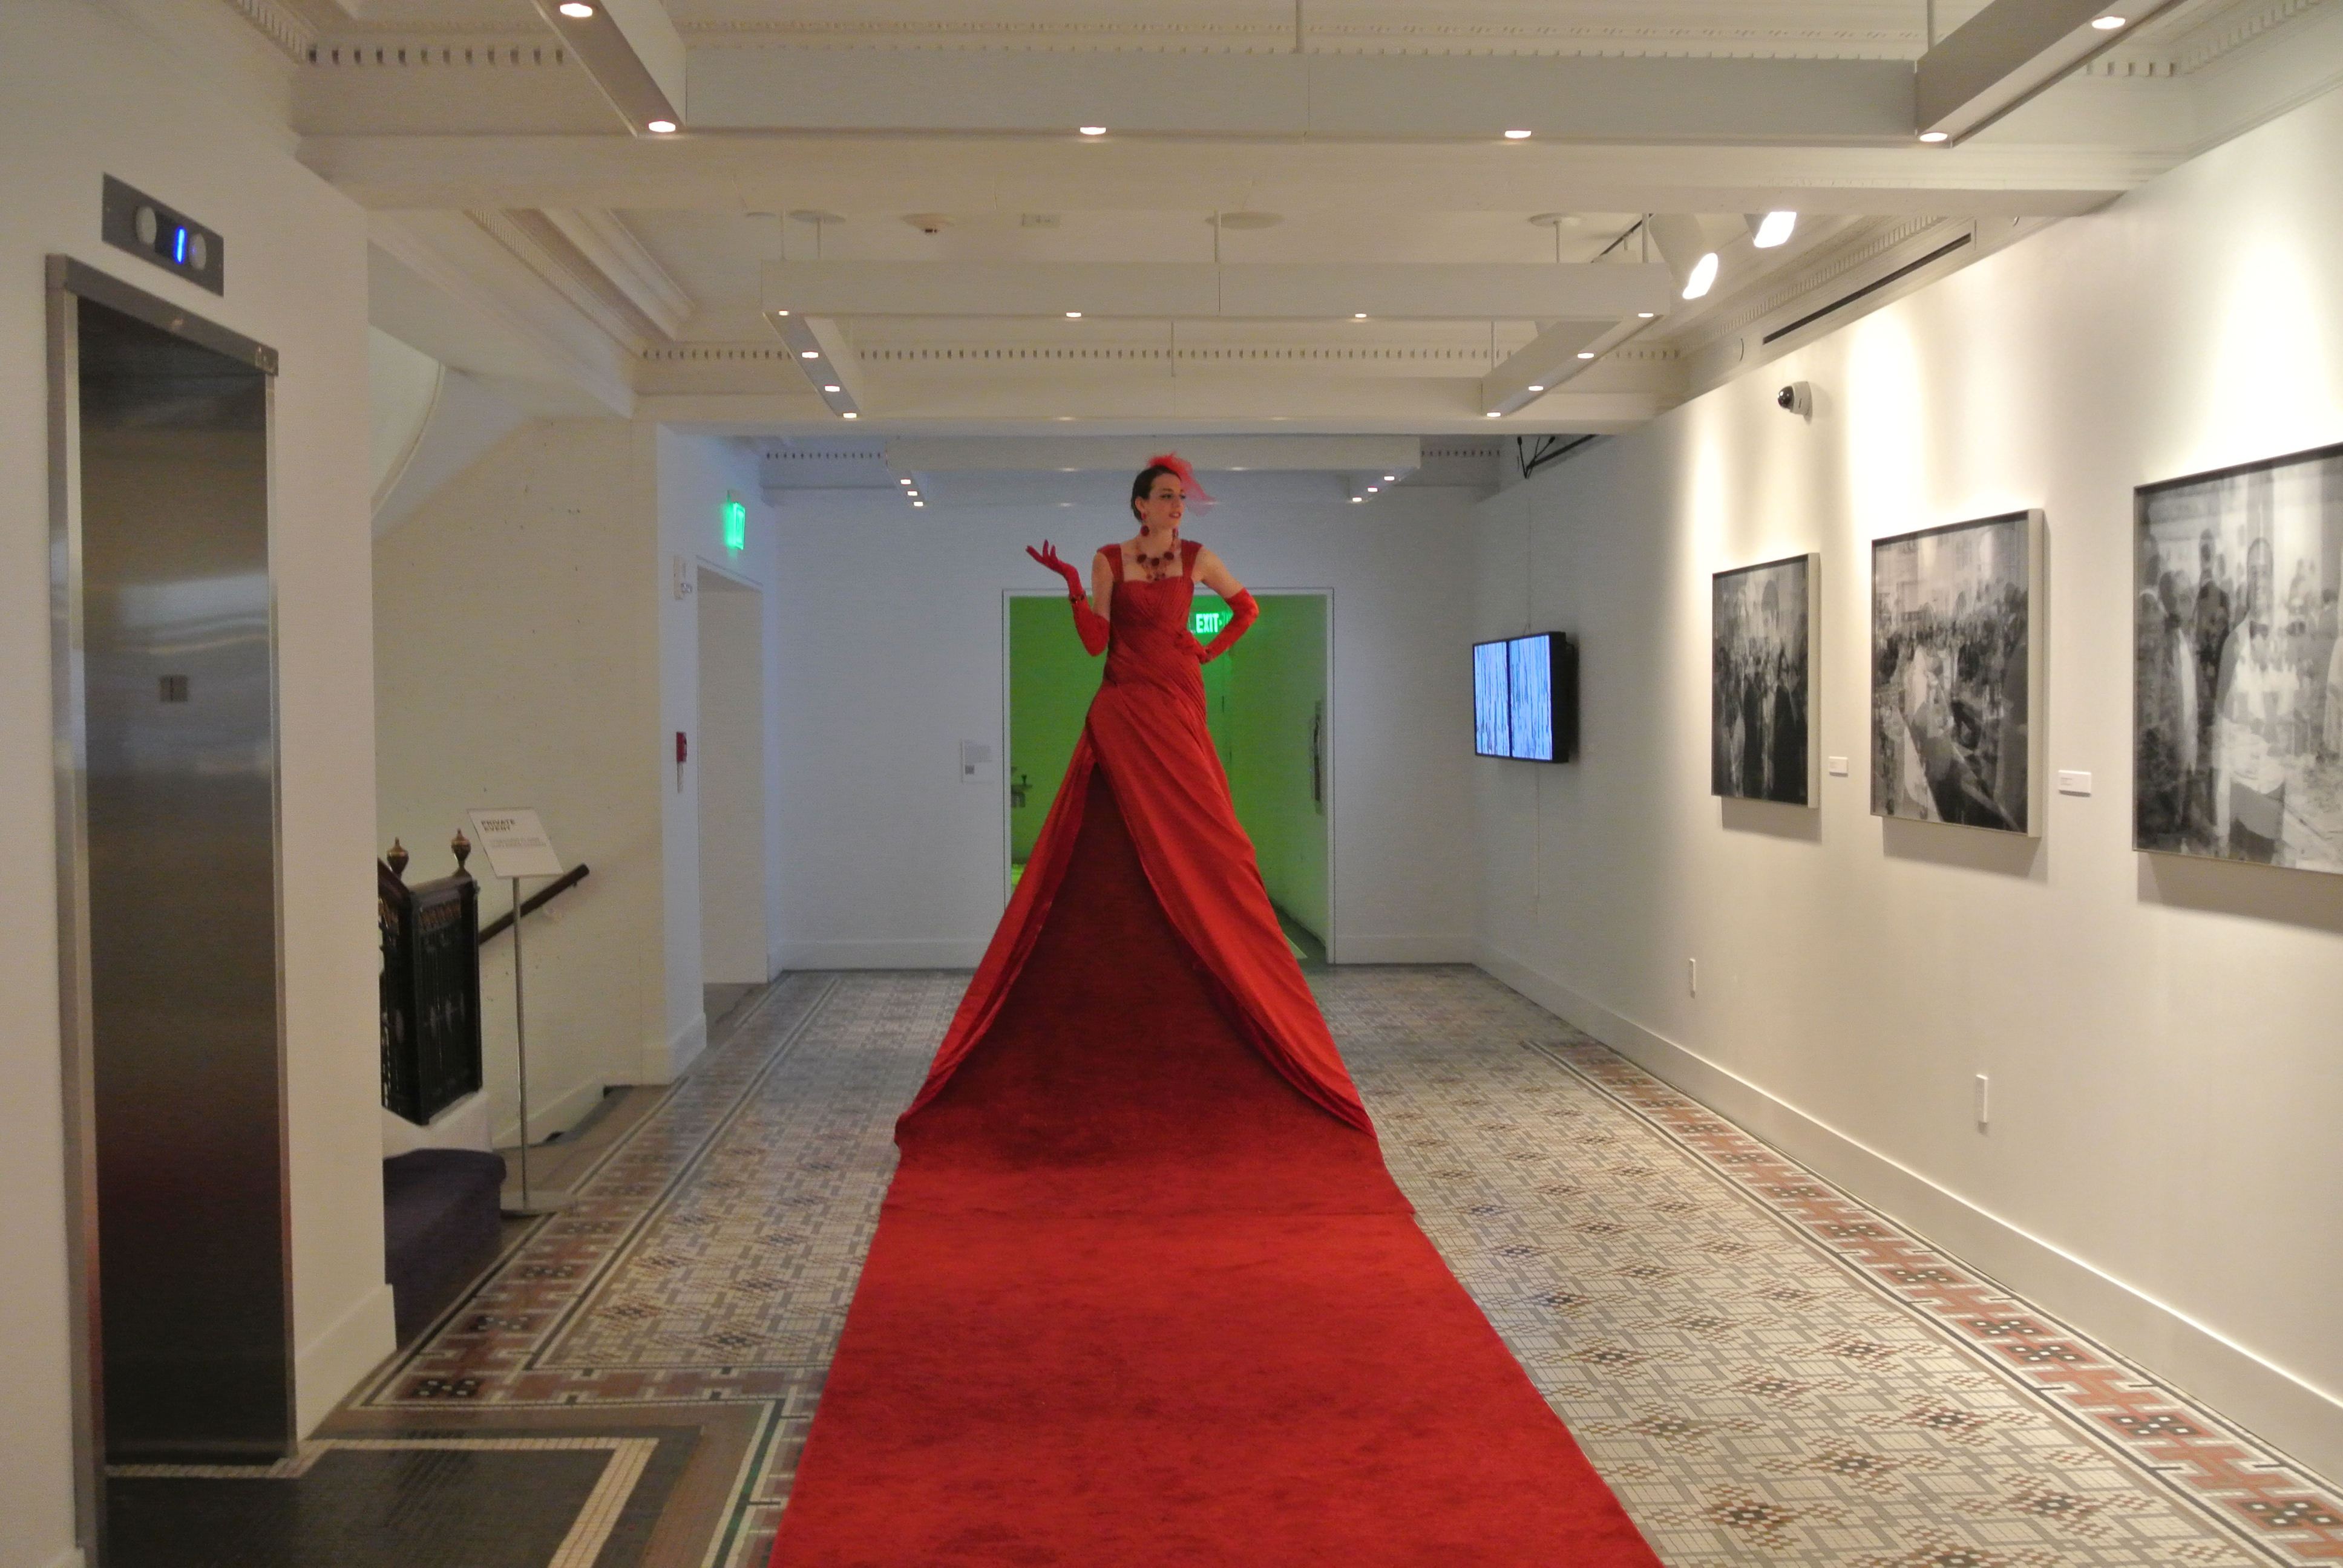 red carpet ideas-event entertainment ideas www.aerialartistry